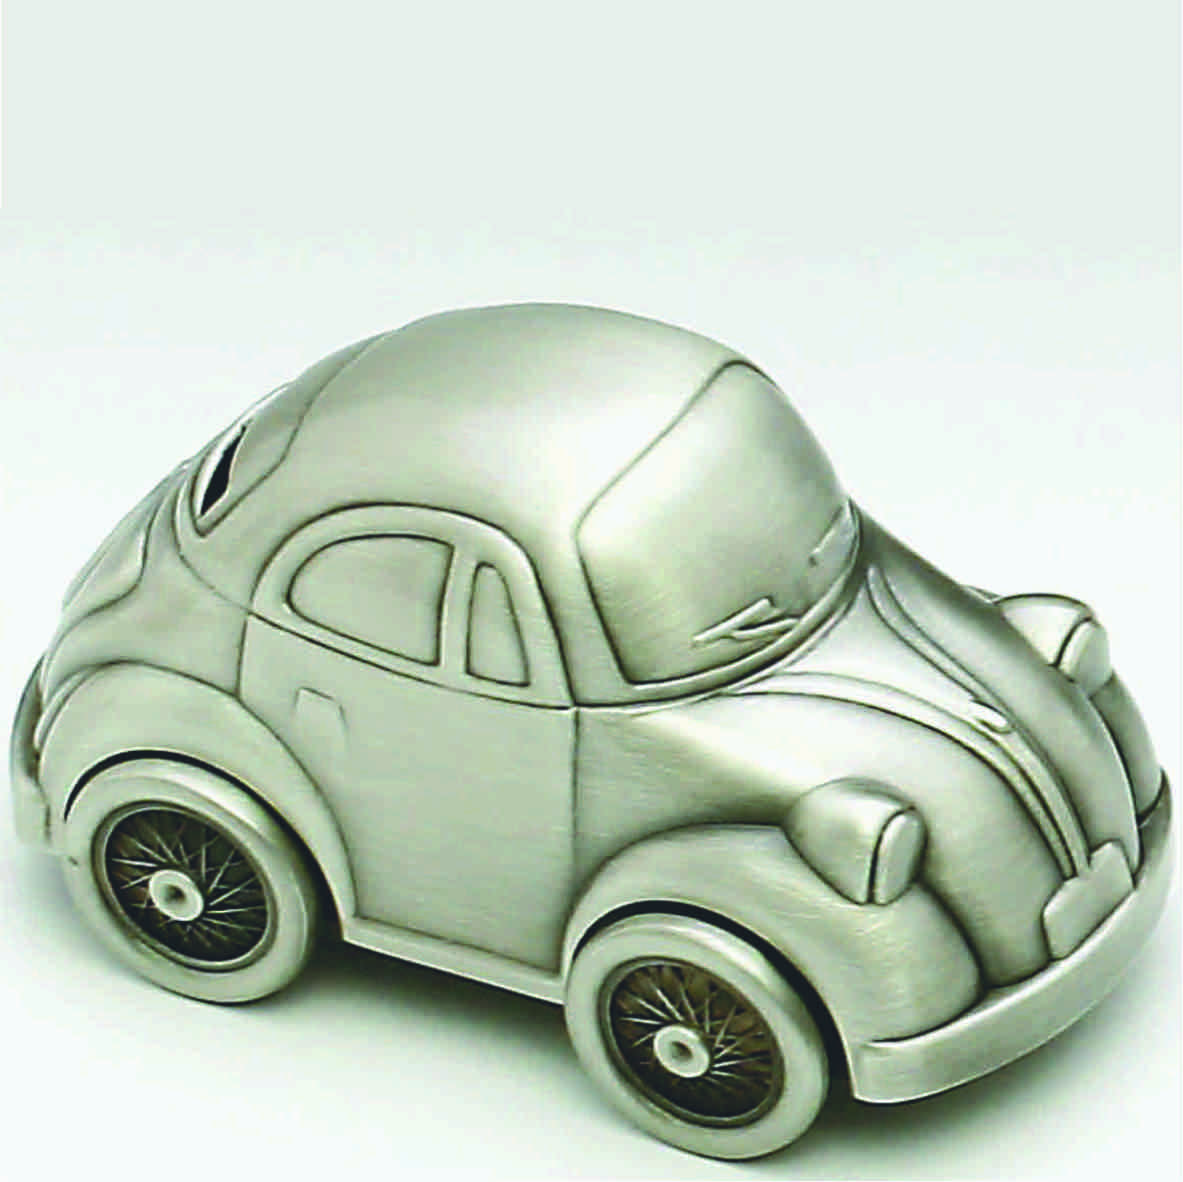 CAR VW MONEY BOX, PEWTER FINISH